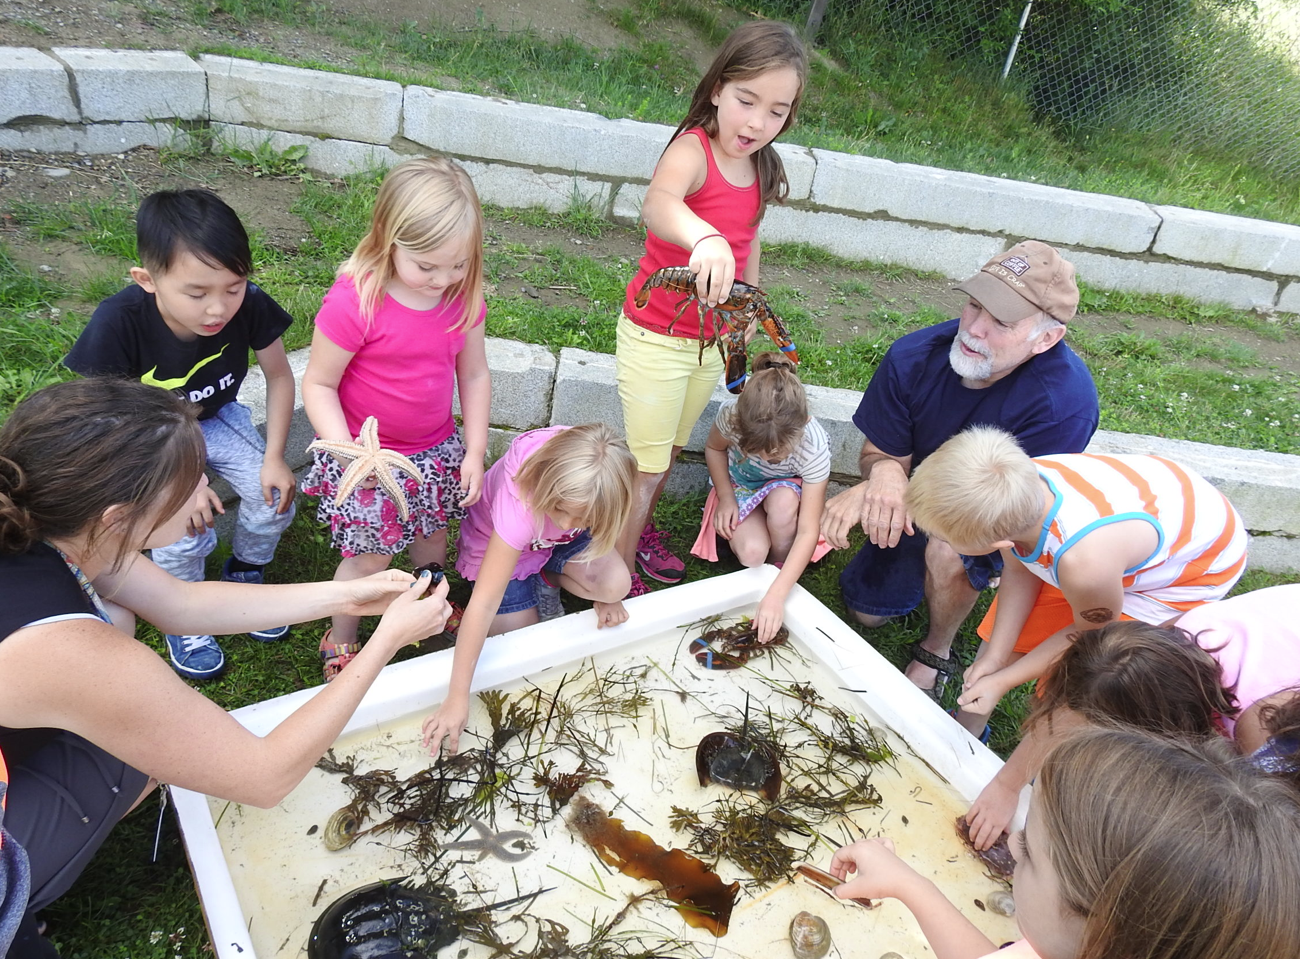 Kindergarten throught second grade students explore a touch tank full of seas creatures on Monday at Mallett School. The activity is part of the extended school summer learning class.